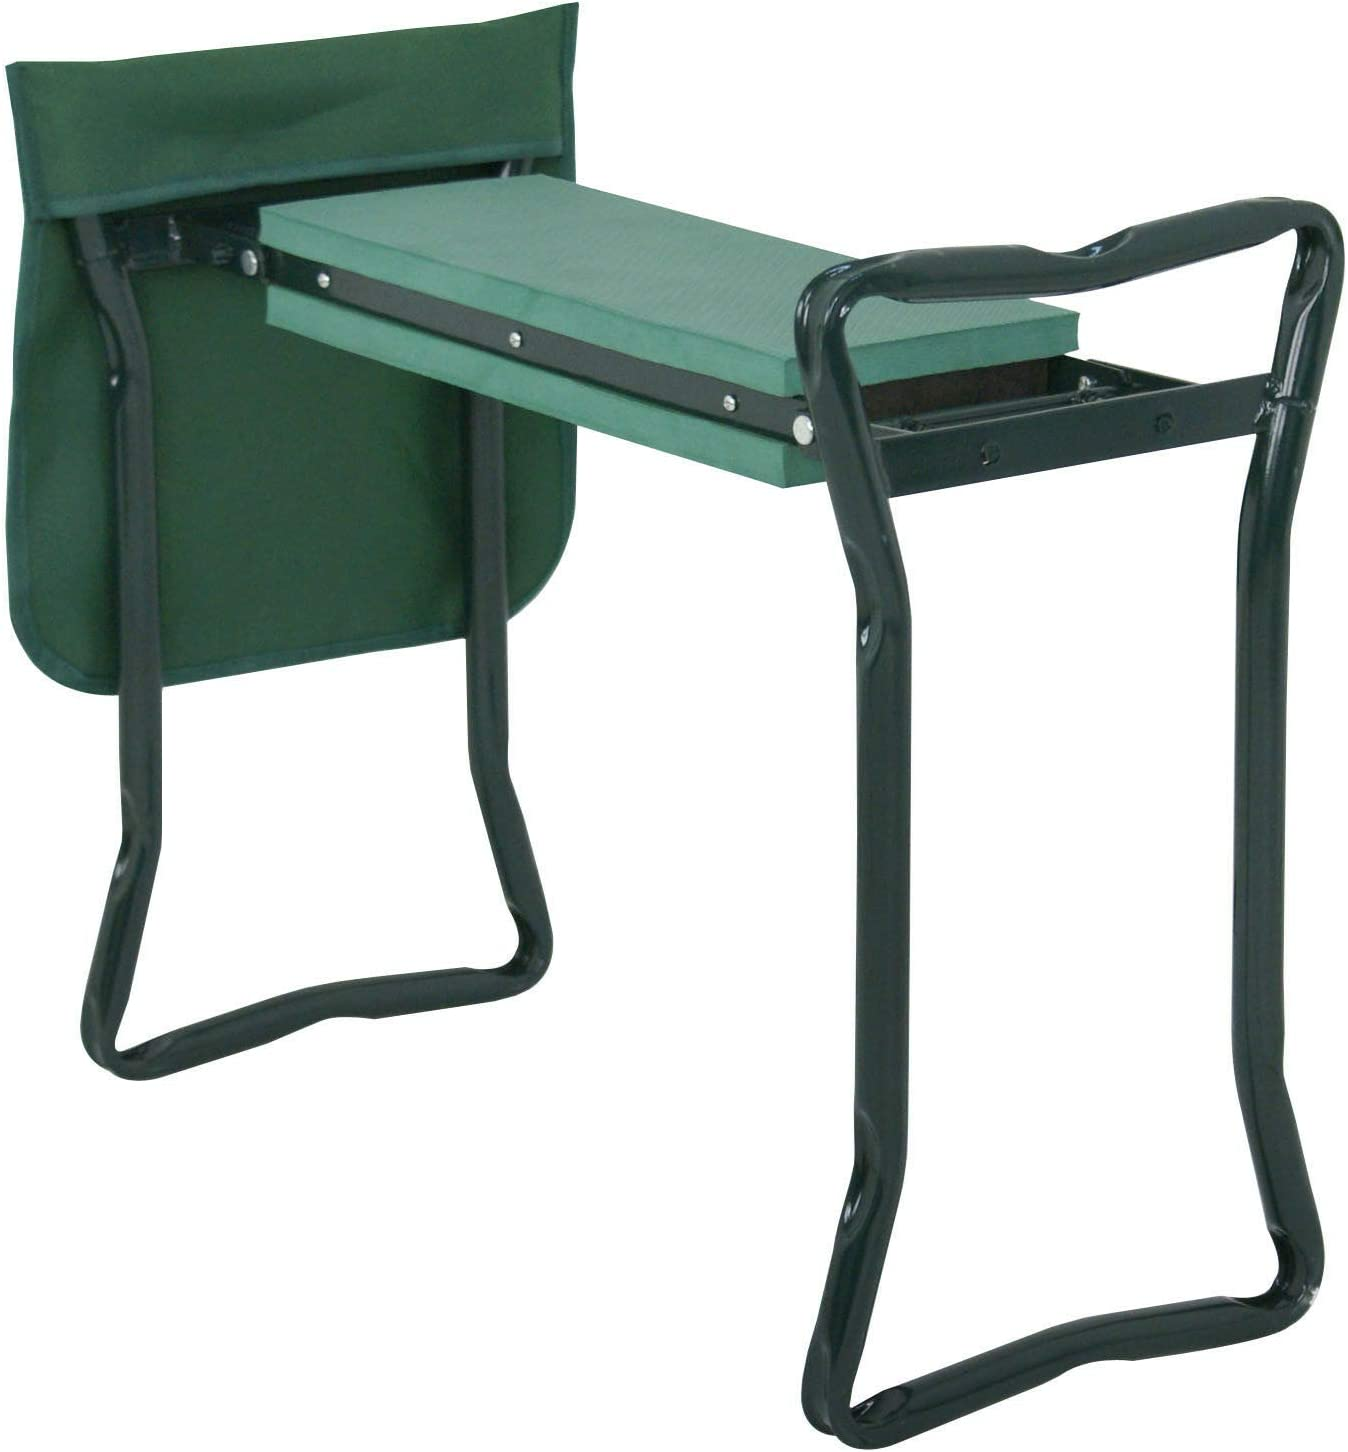 Ngernlaimaa Foldable Kneeler Garden Kneeling Bench Stool Soft Cushion Seat Pad w Tool Pouch